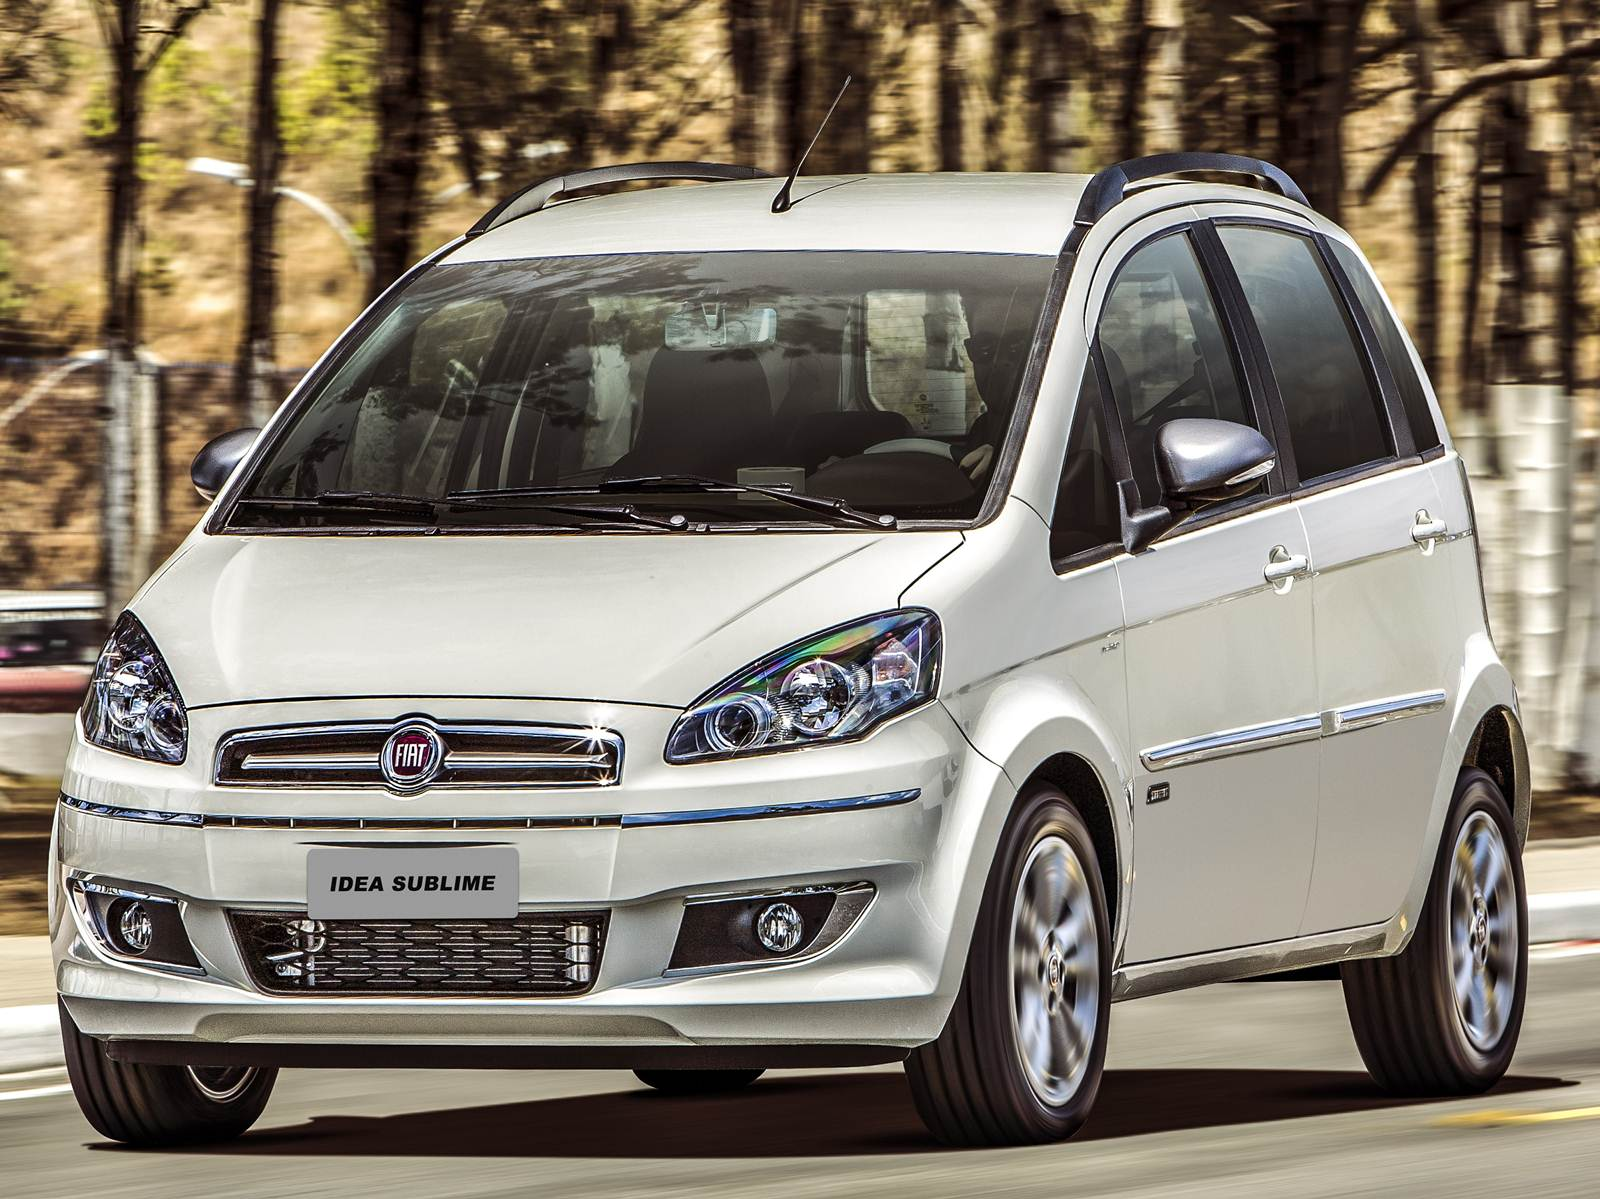 Fiat Idea Sublime 2014